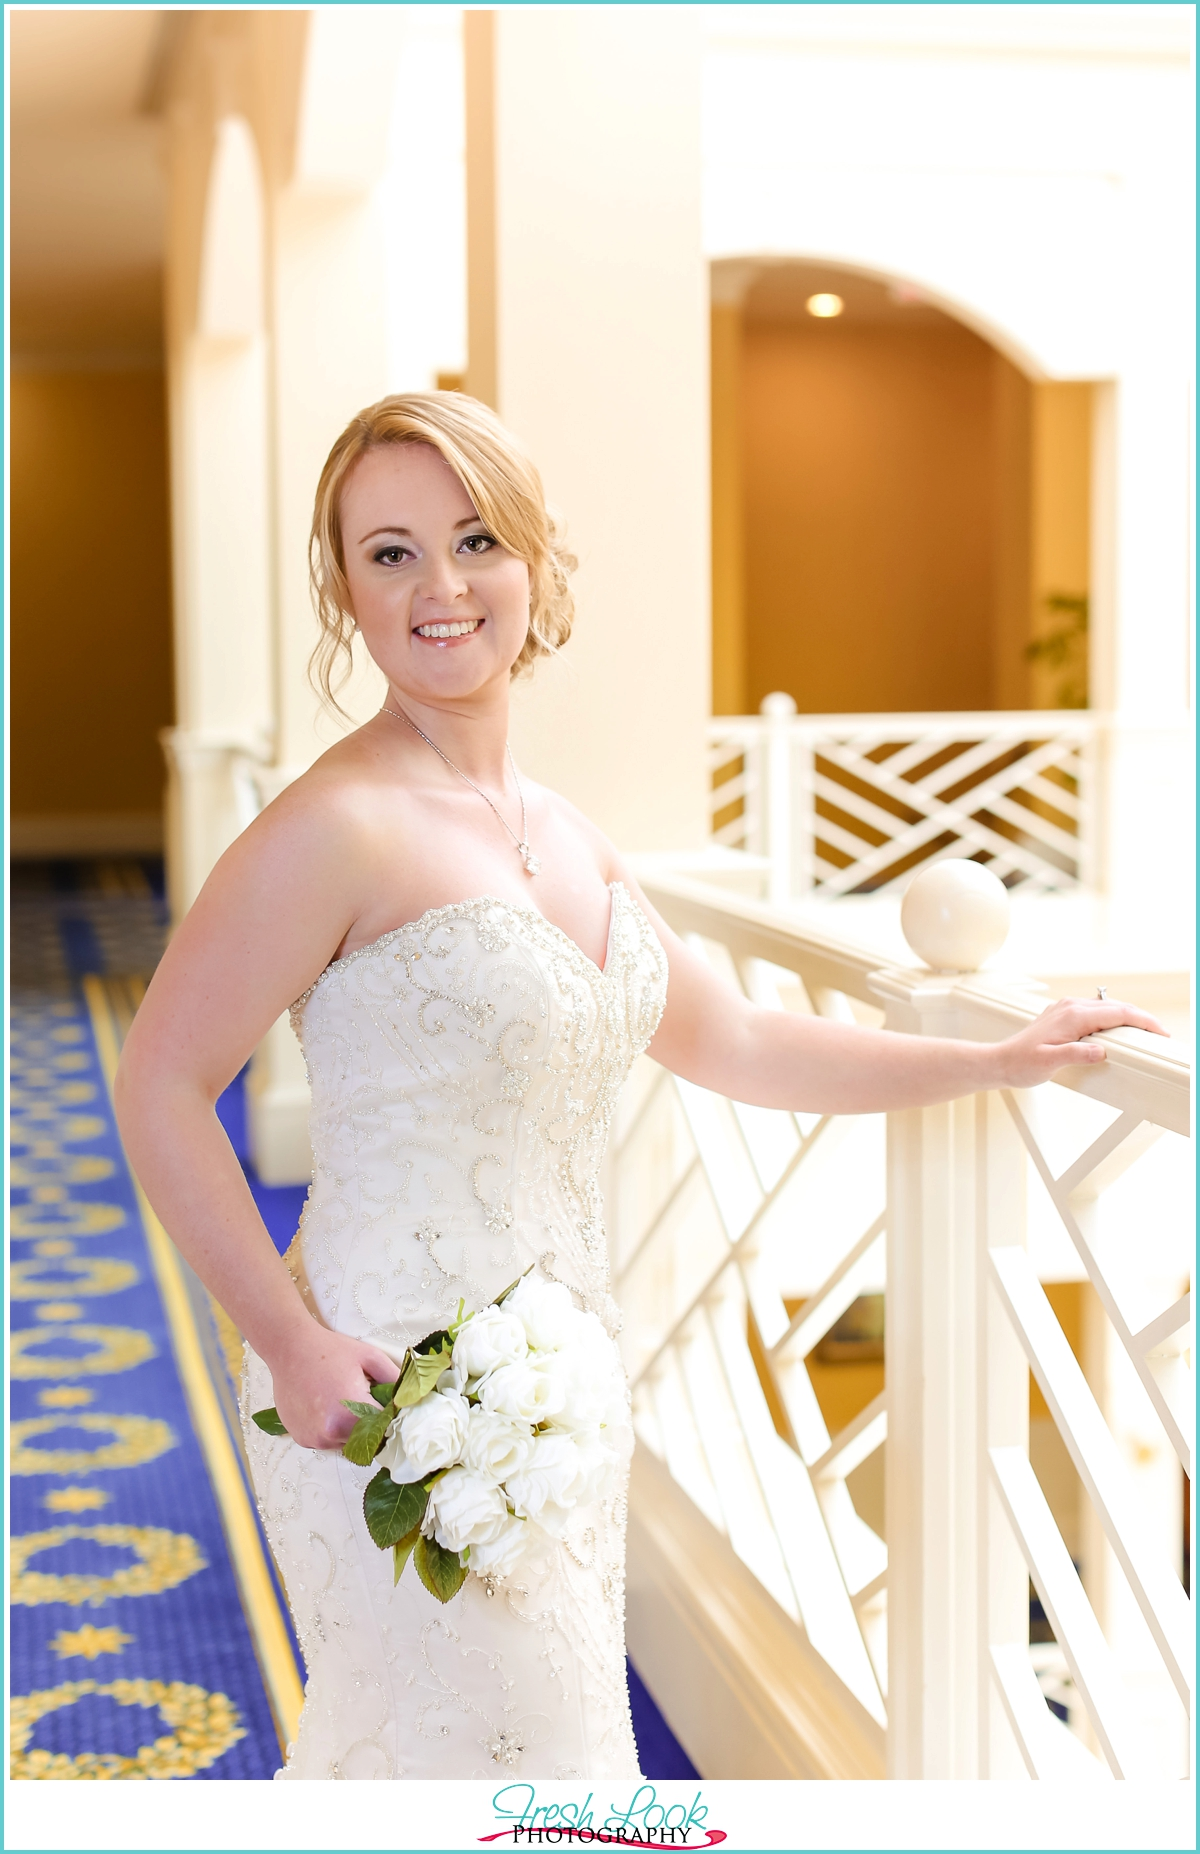 Founders Inn Wedding Photographer | Kallissa - JudithsFreshLook.com